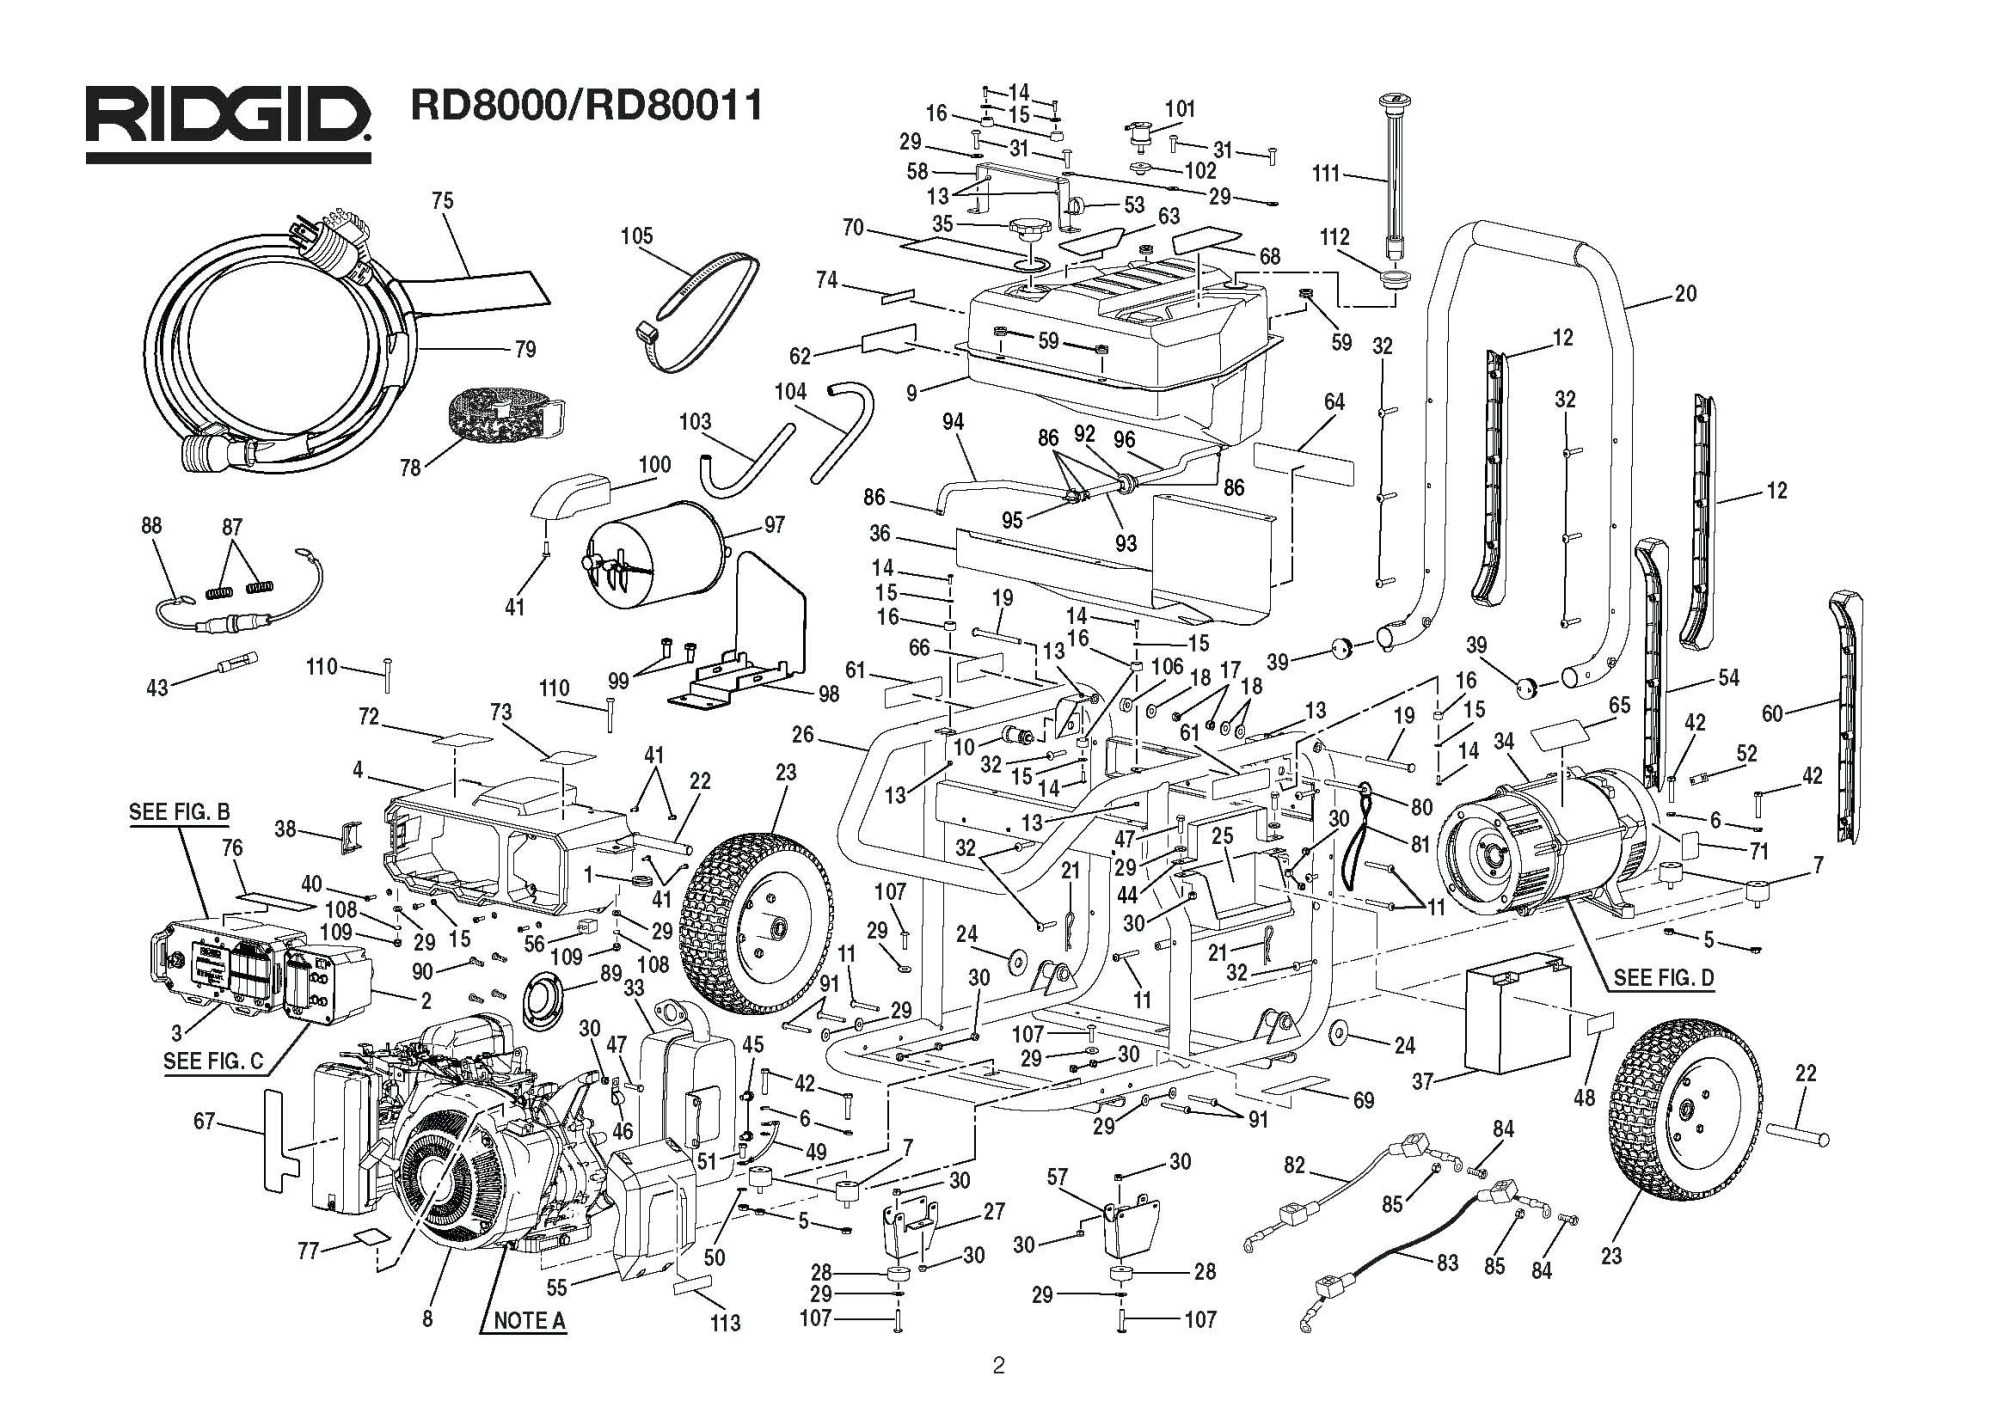 hight resolution of 2009 subaru engine diagram wiring diagram fascinating2009 subaru engine diagram wiring diagram inside 2009 subaru engine